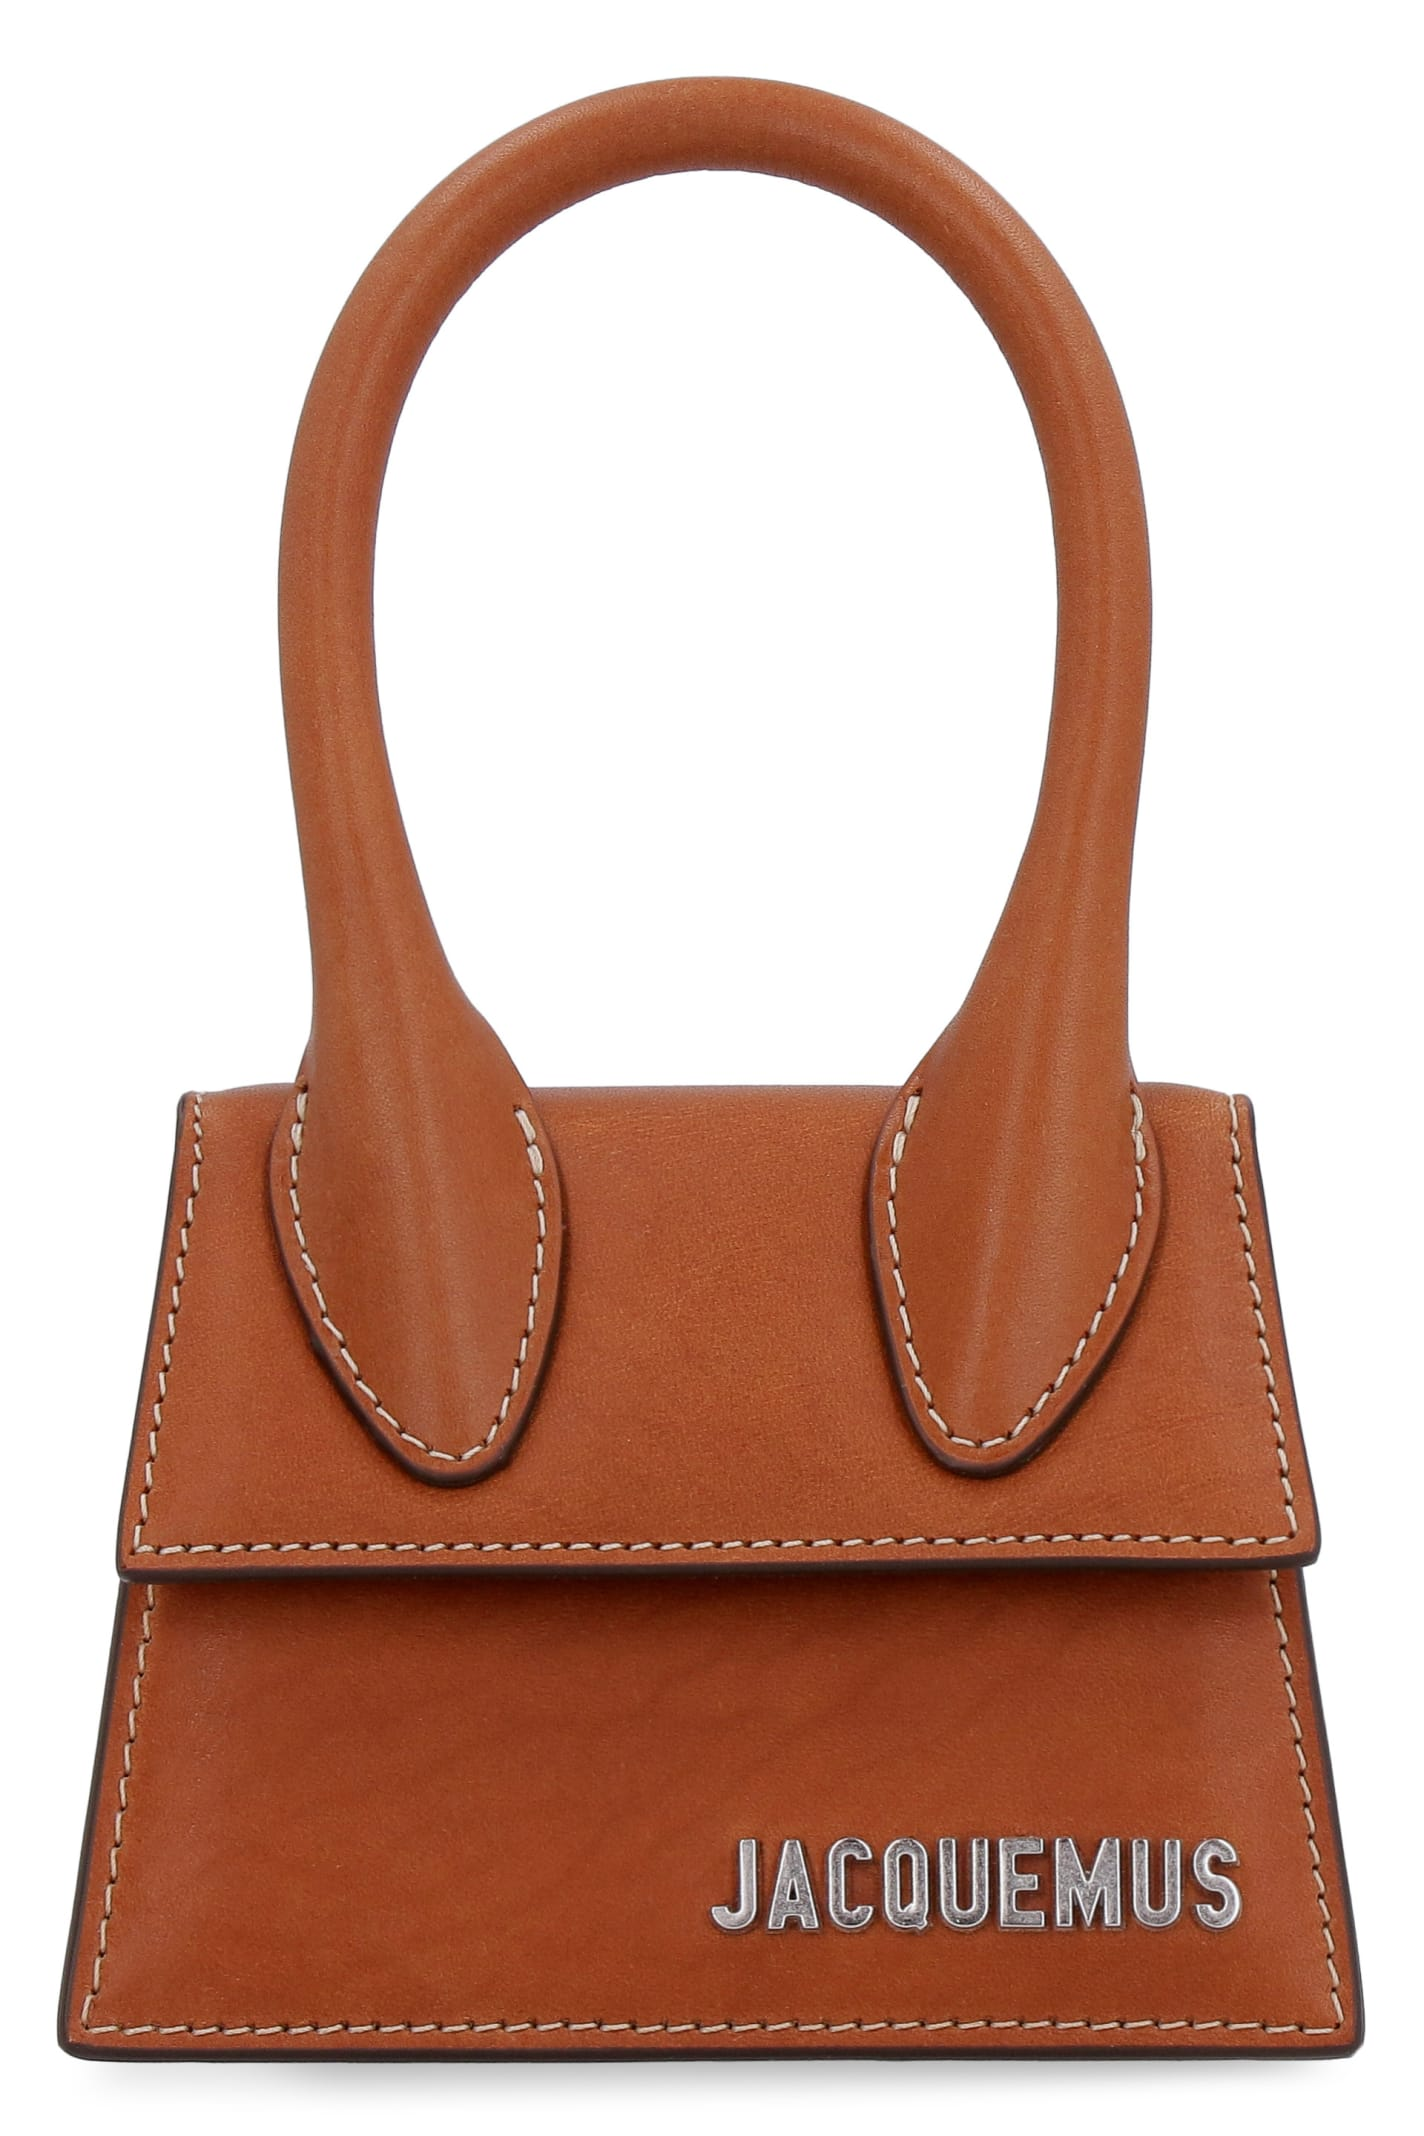 Jacquemus Le Chiquito Leather Mini Bag In Saddle Brown